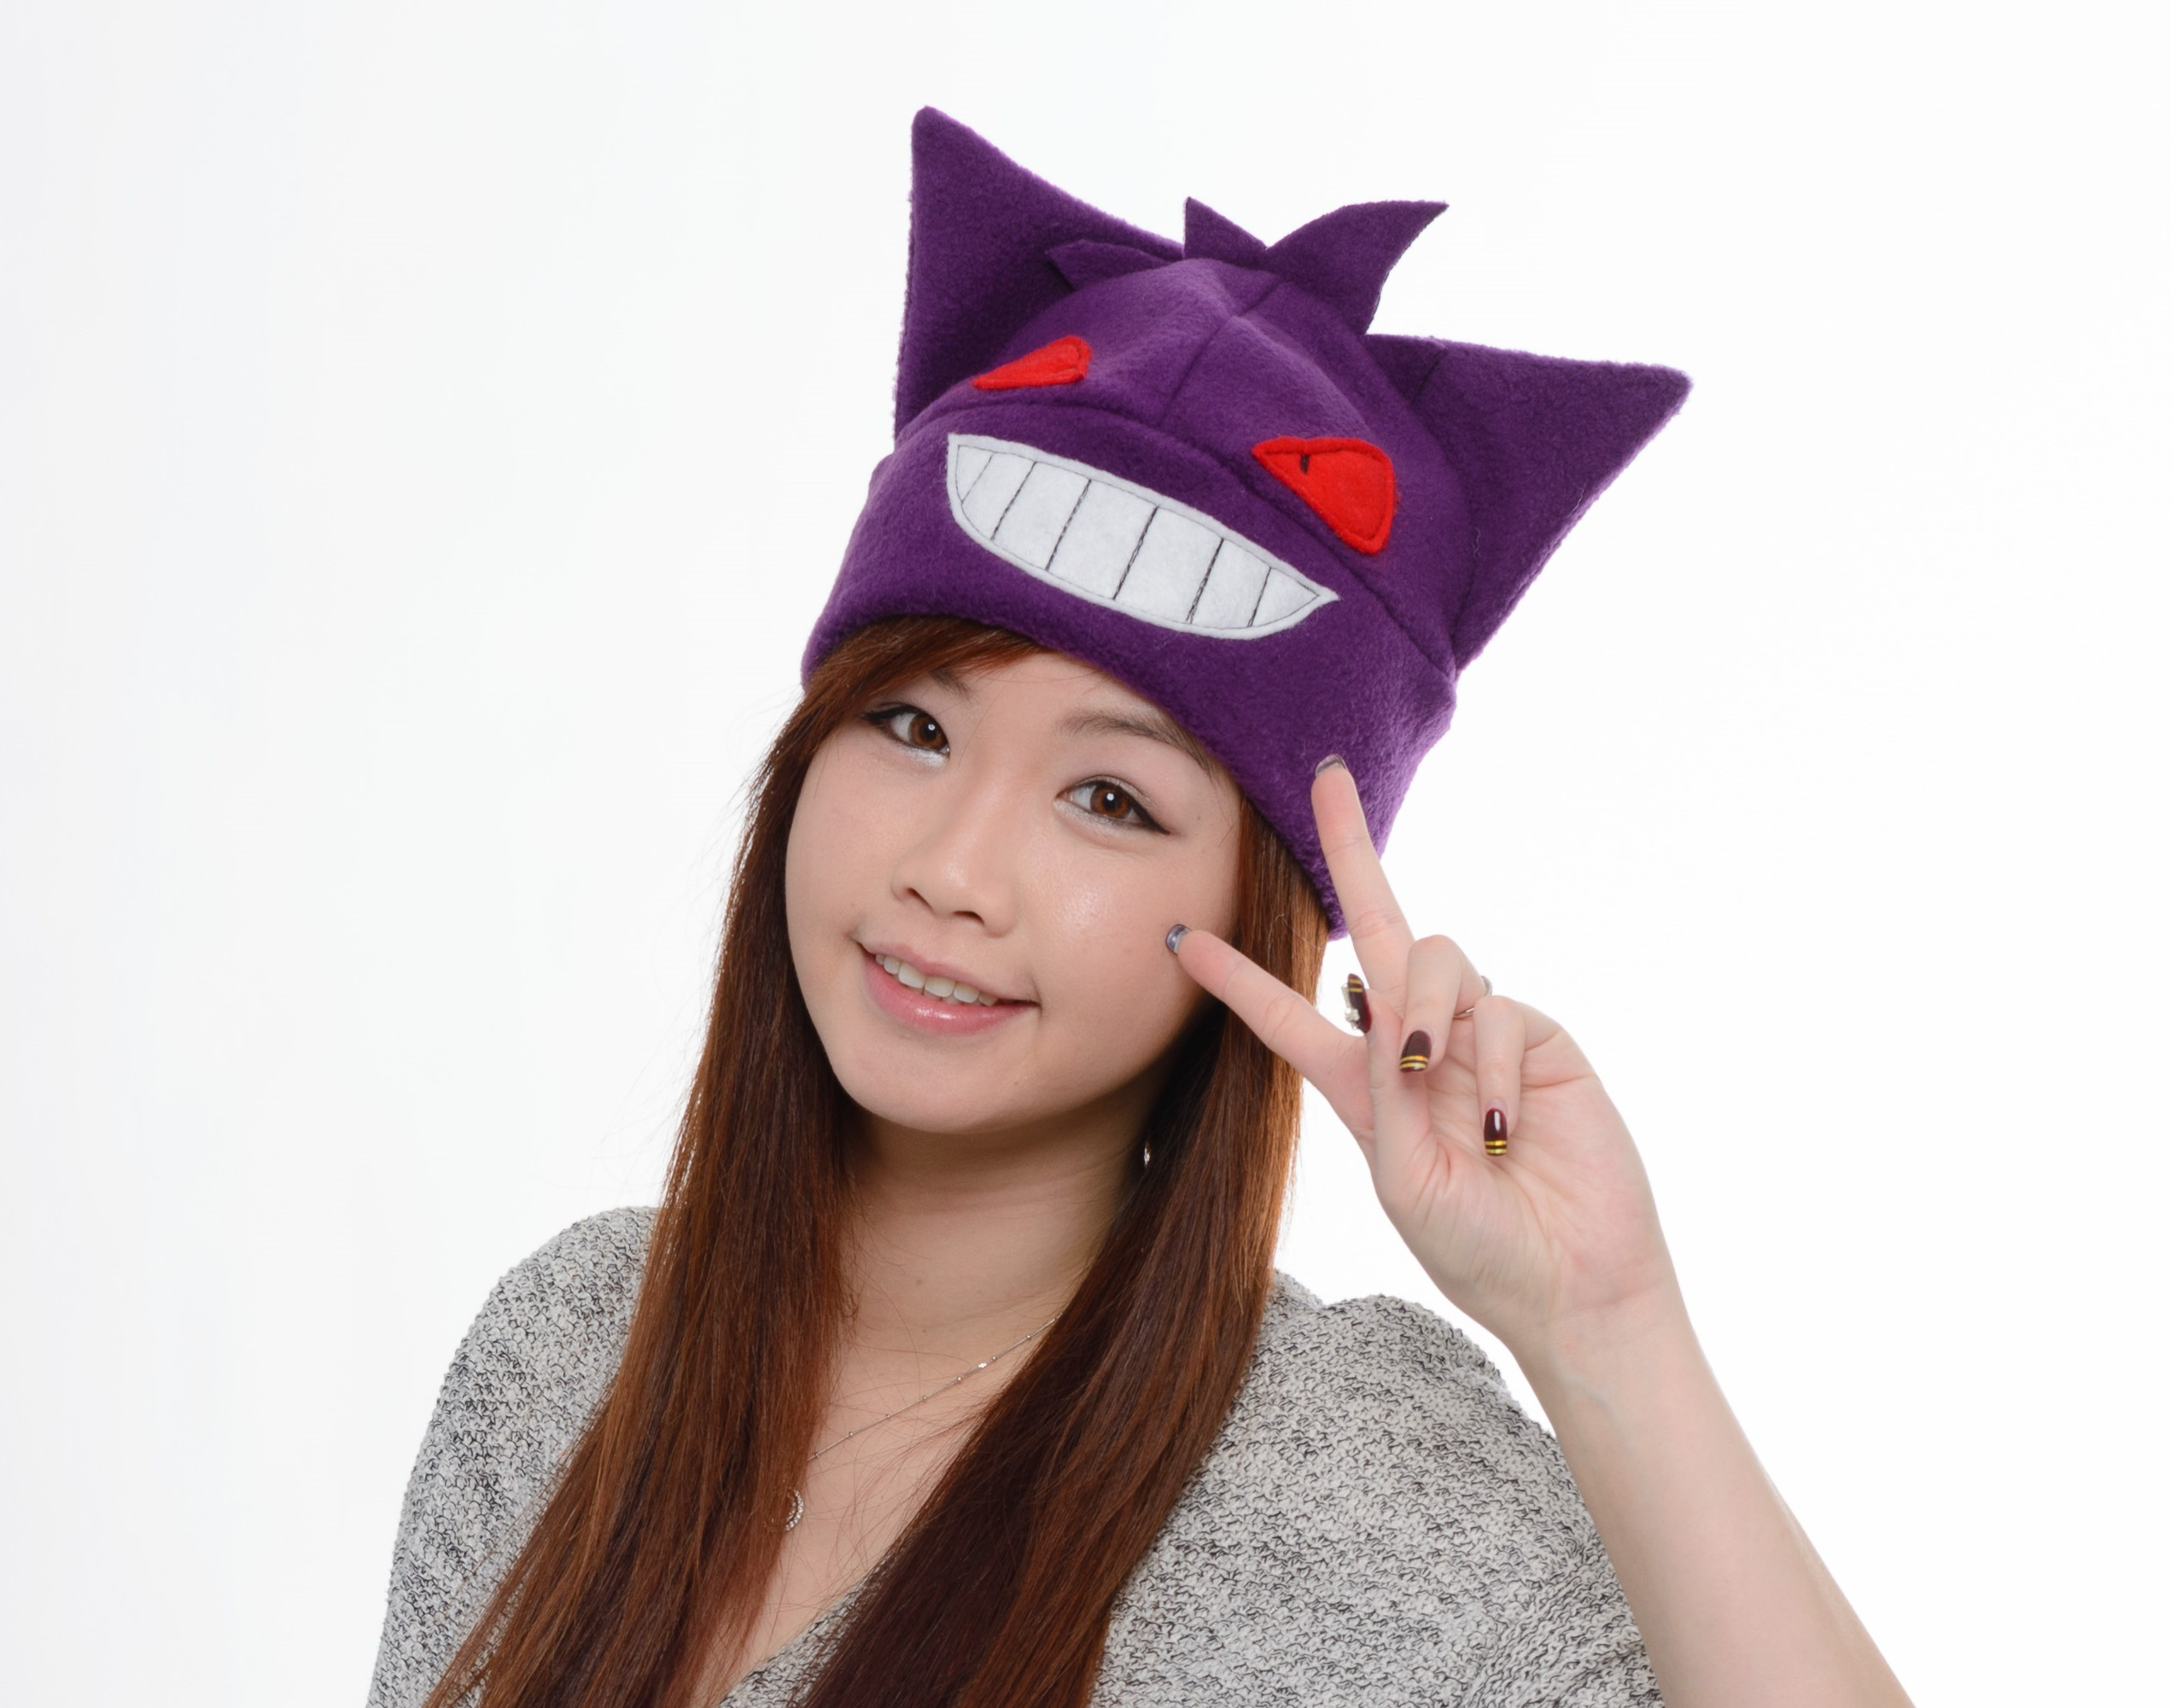 Gengar Fleece Hat - Anime Hat - Manga Hat - Cosplay Convention Hat - Purple Gengar  hat - Anime Gengar Hat on Storenvy dca10b18aad3